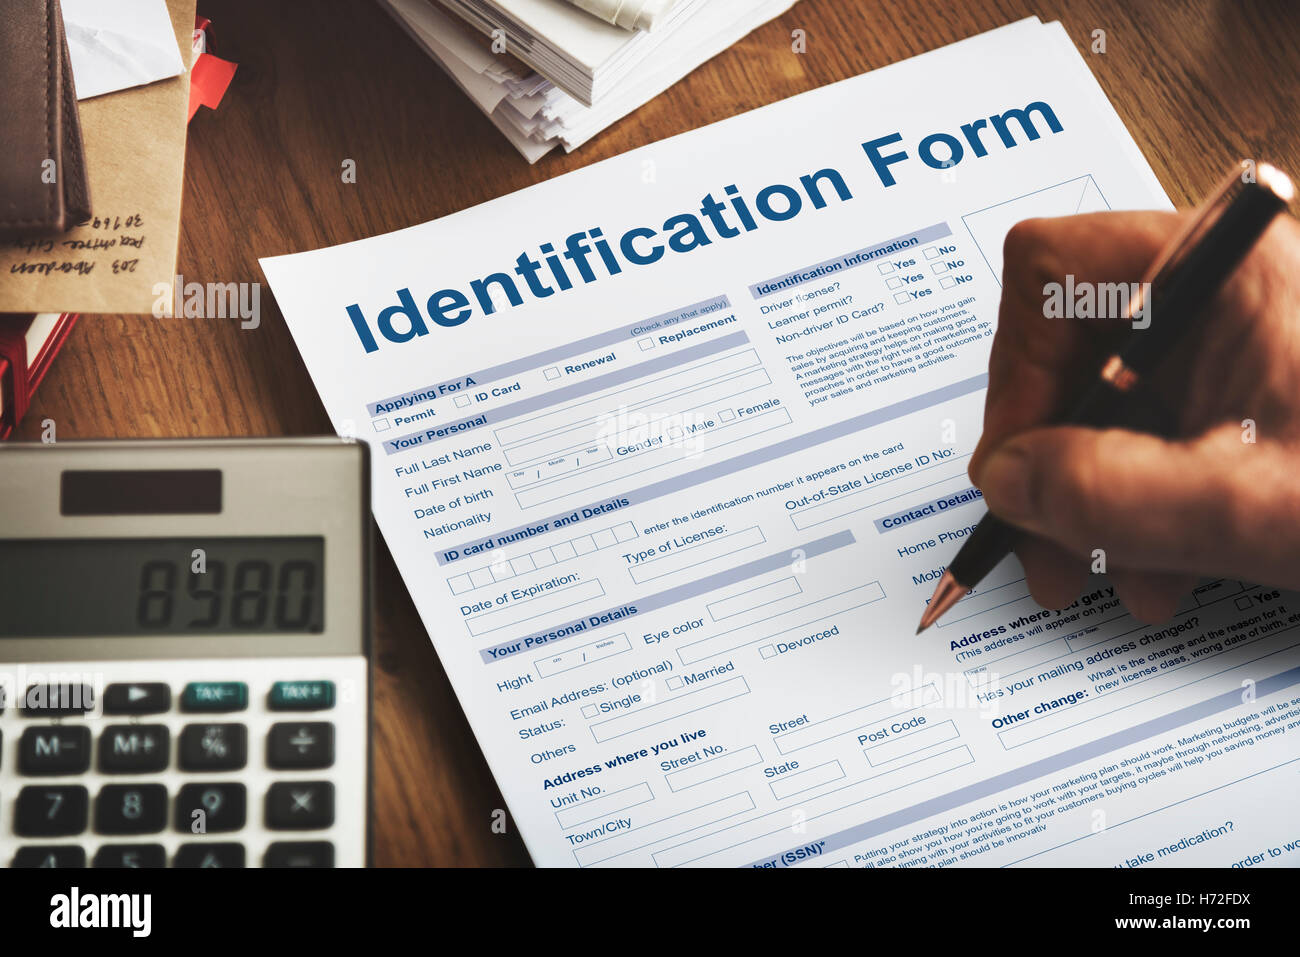 Identification Form Name Individuality Personality Concept - Stock Image